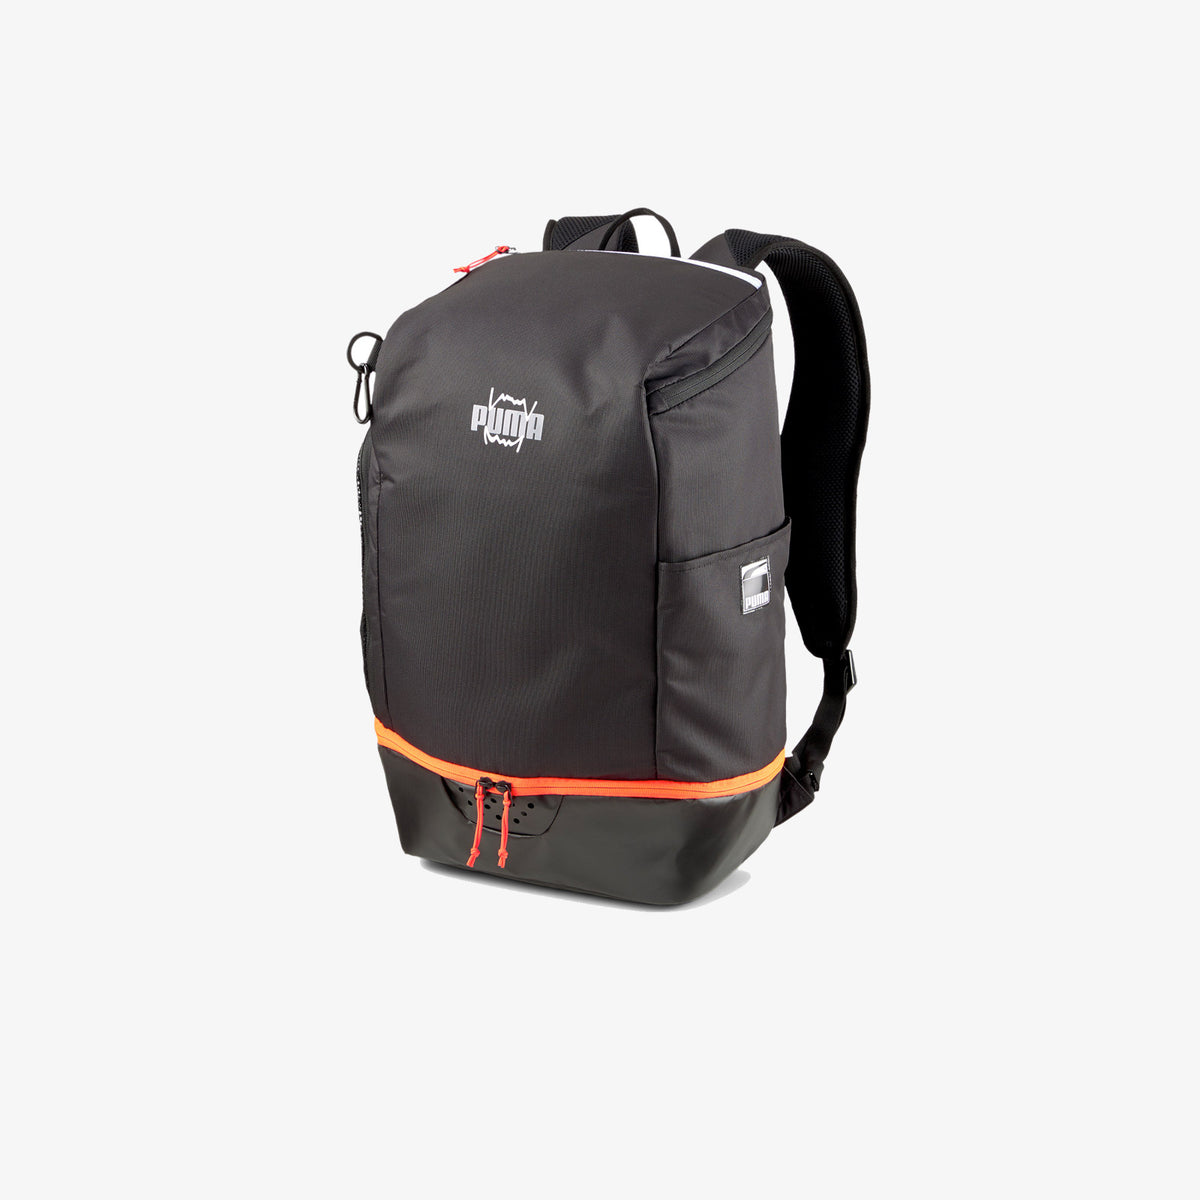 Puma Pro Basketball Backpack - Black